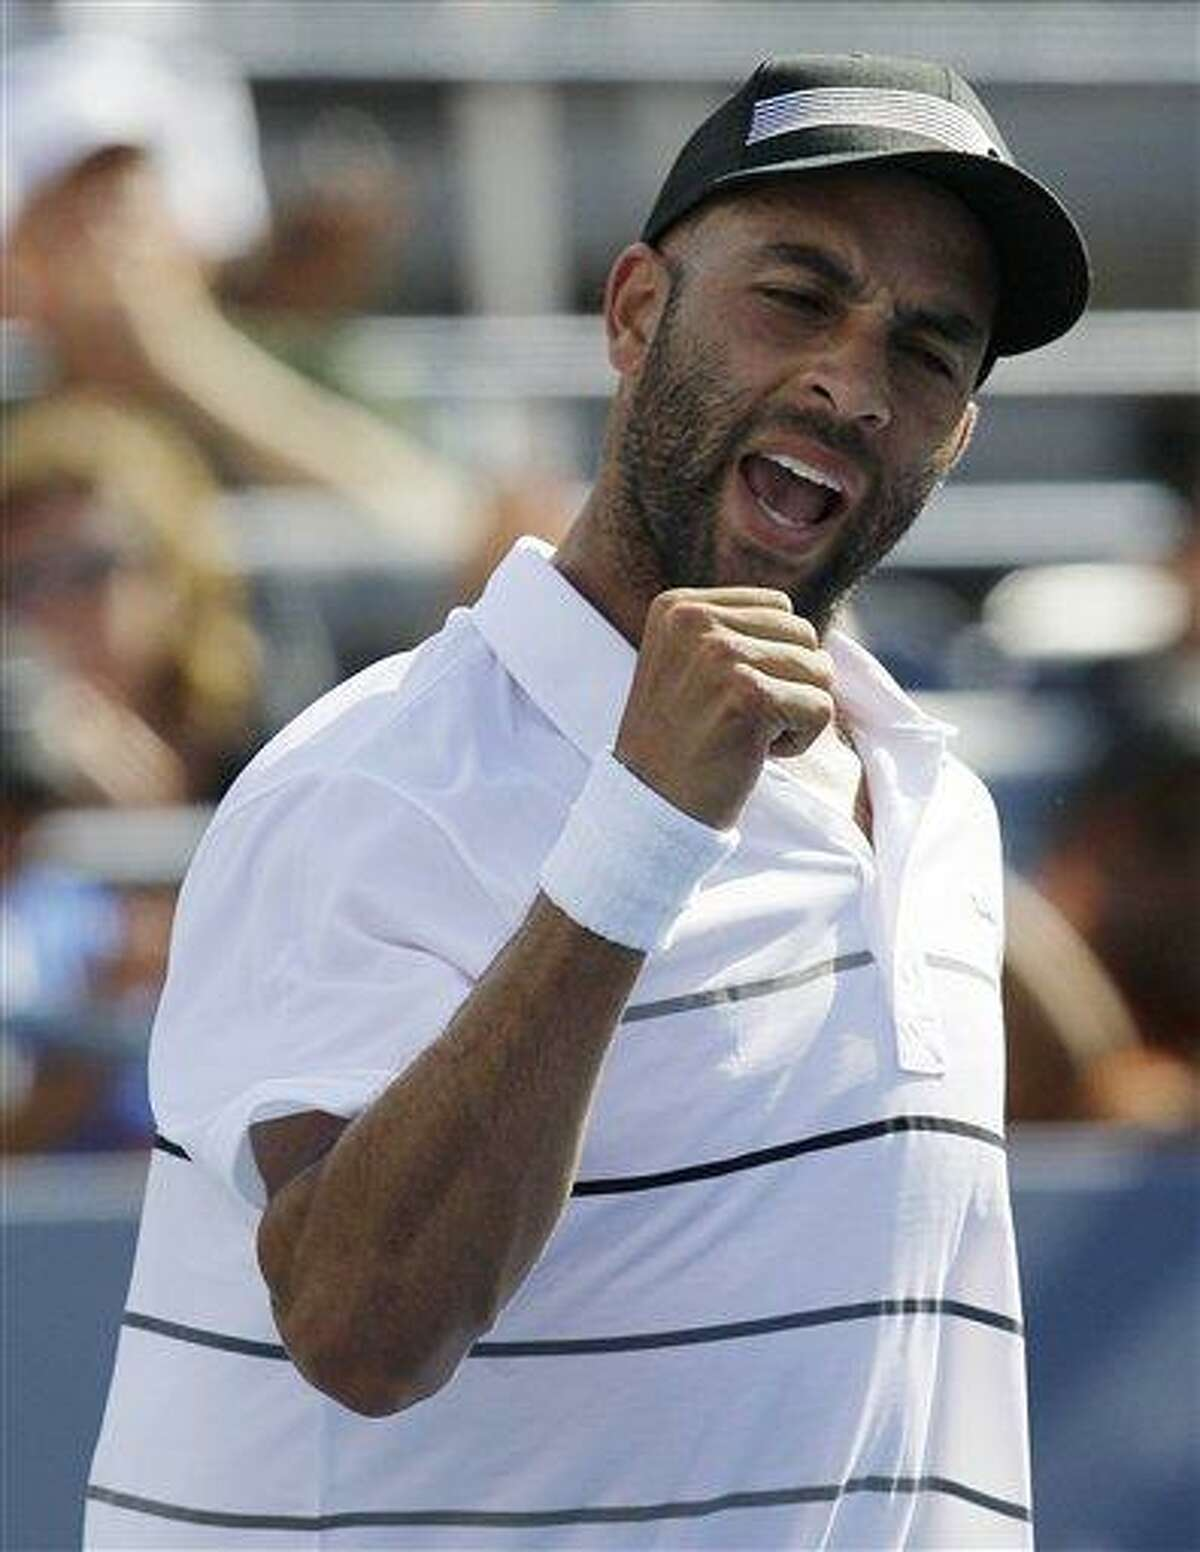 James Blake reacts after winning his match against Lukas Lacko, of Slovakia, in the first round of play at the 2012 US Open Tennis tournament, Monday, Aug. 27, 2012, in New York. (AP Photo/Kathy Willens)